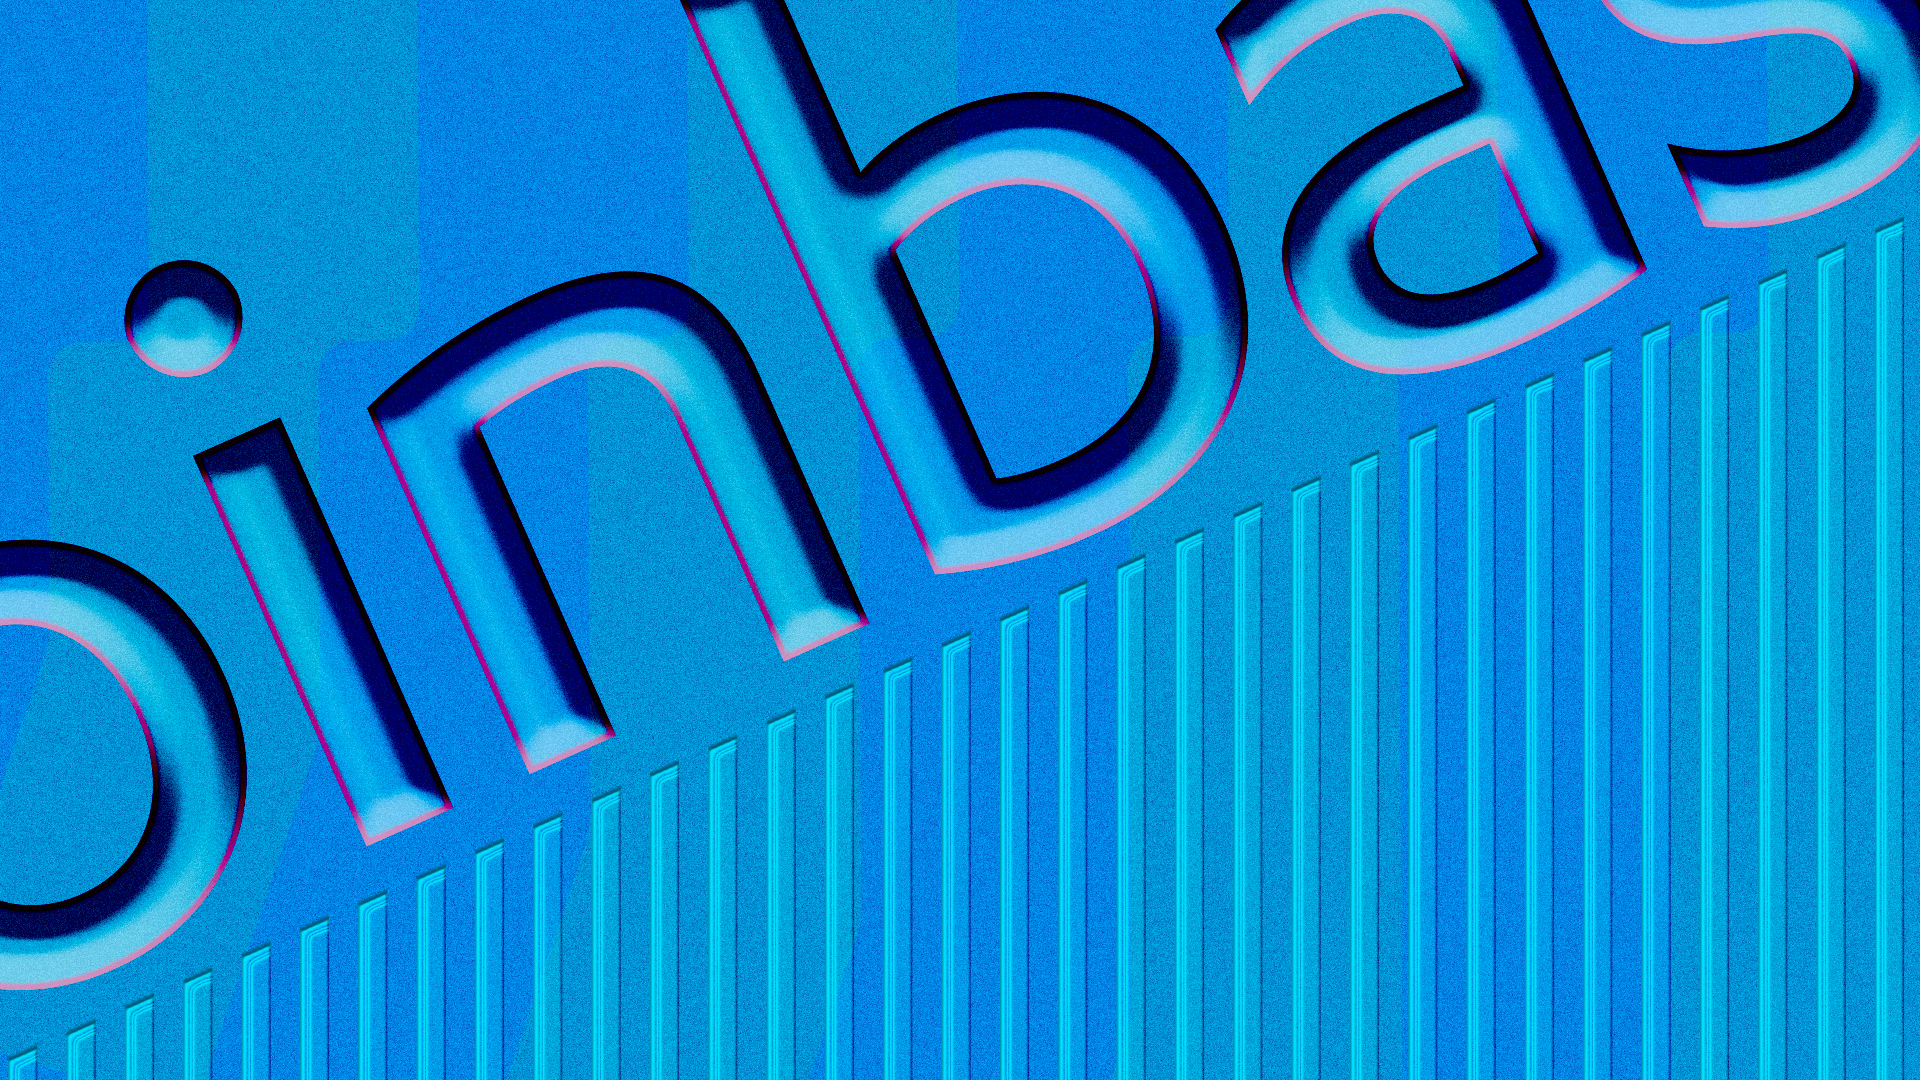 Crypto exchange Coinbase hints at potential token issuance in its S-1 filing